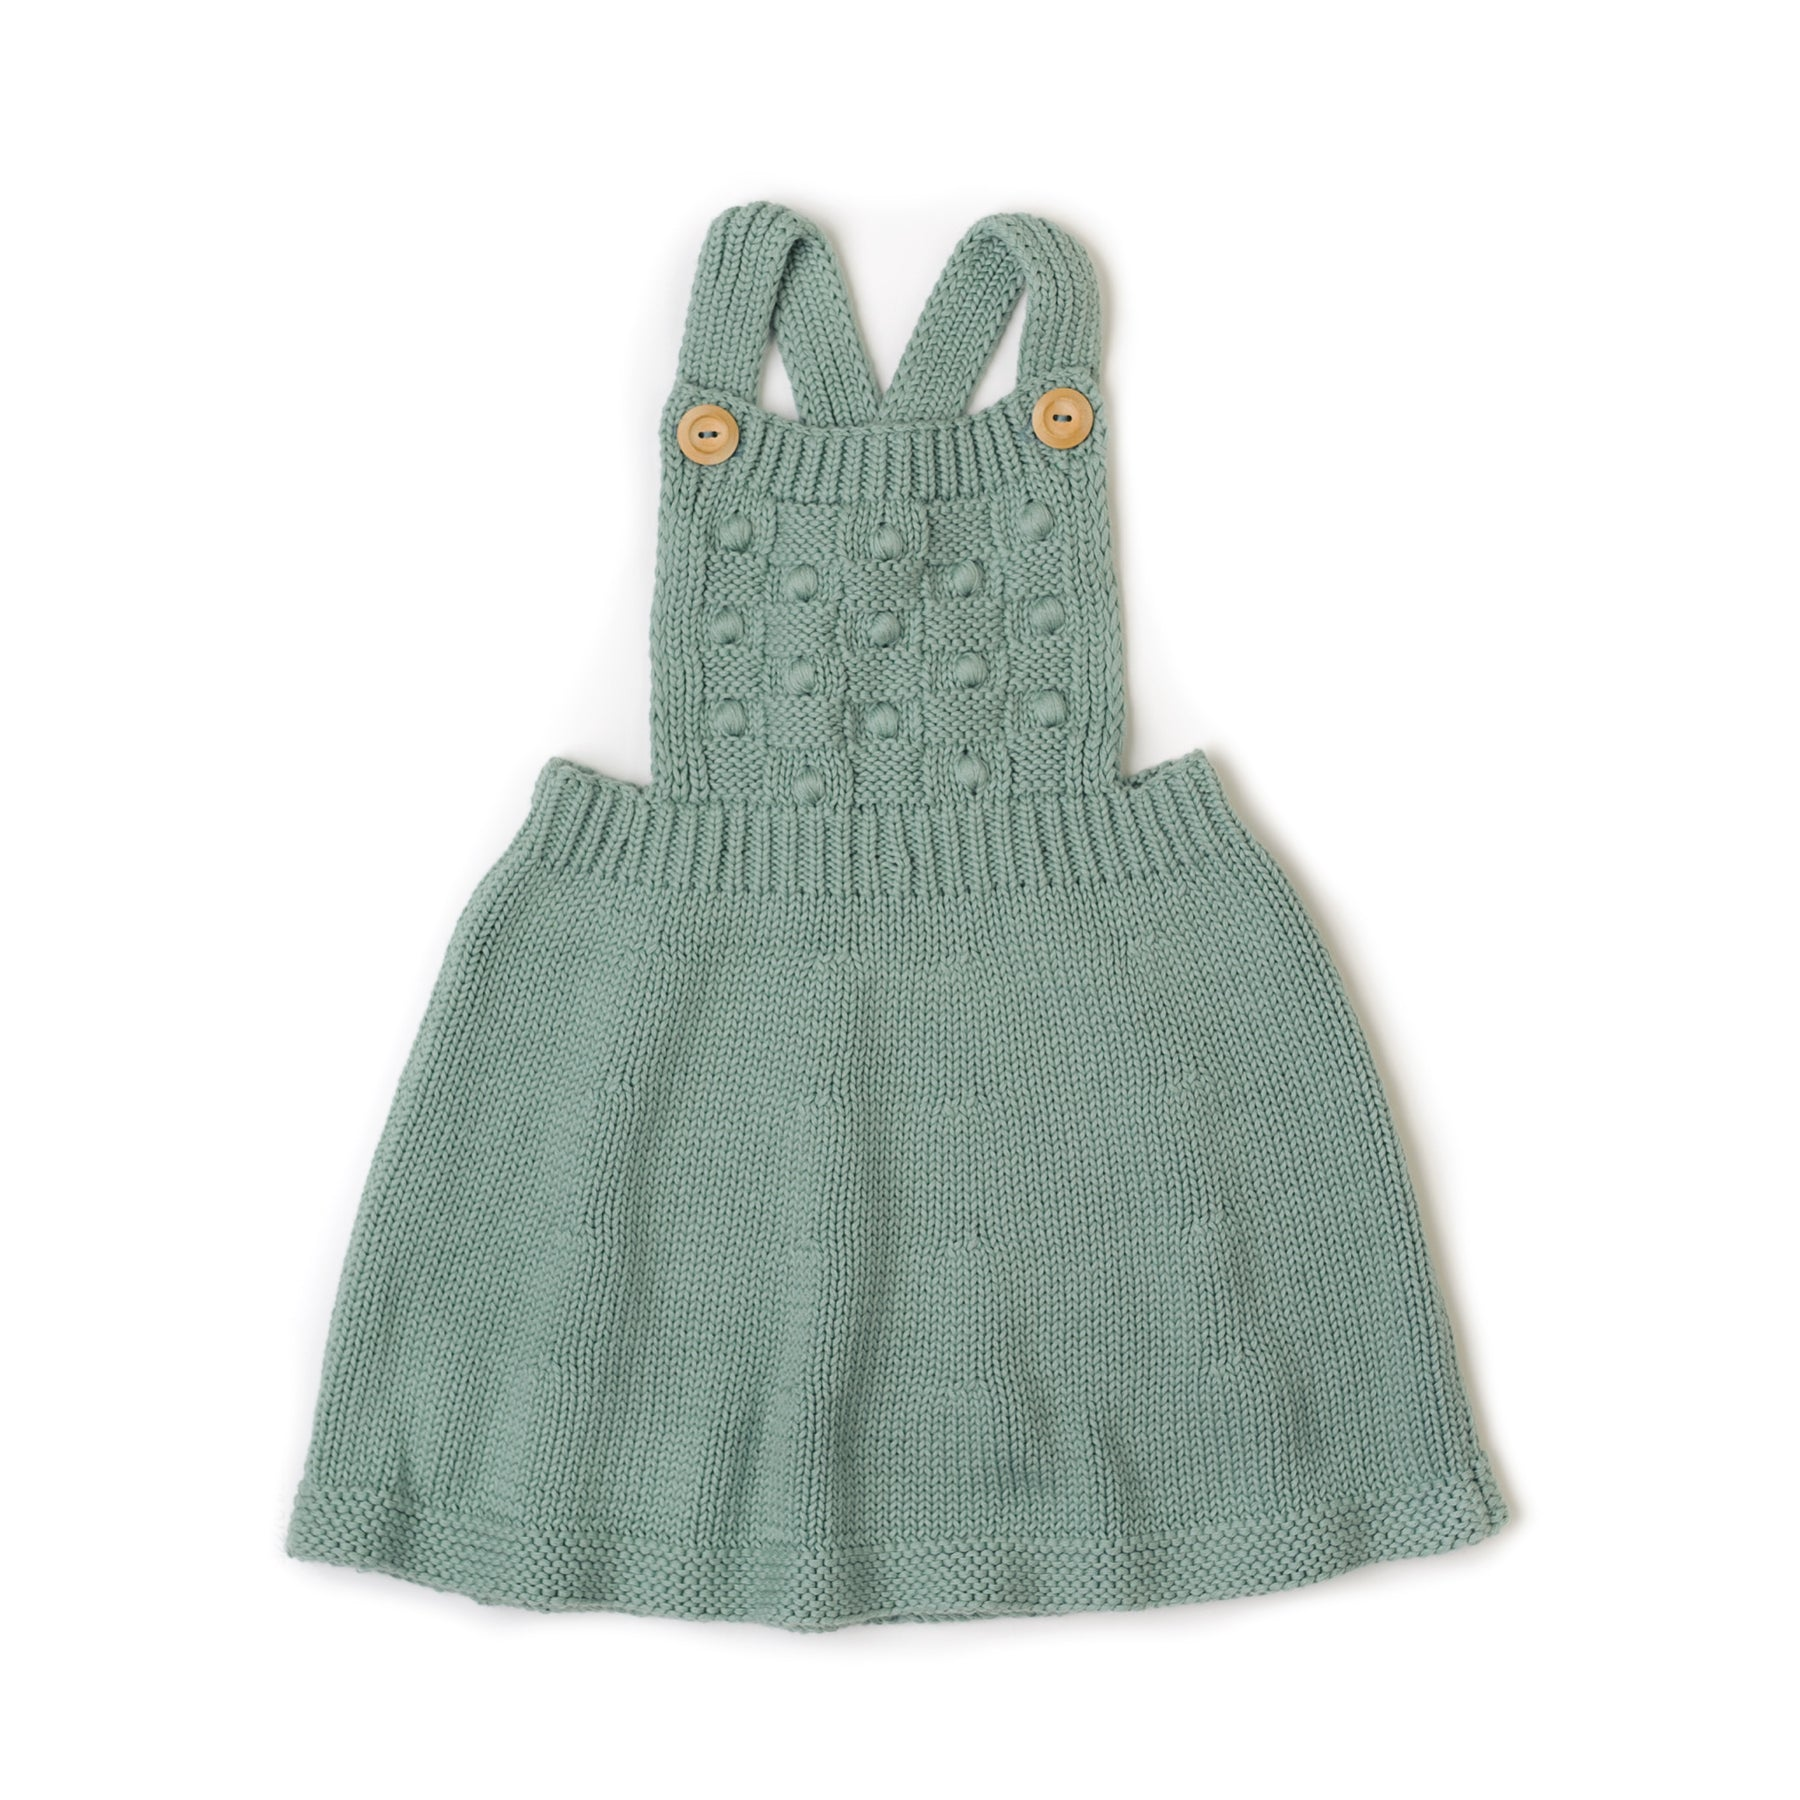 Fin and Vince - Knit Dress (Moss) - Last 2/3